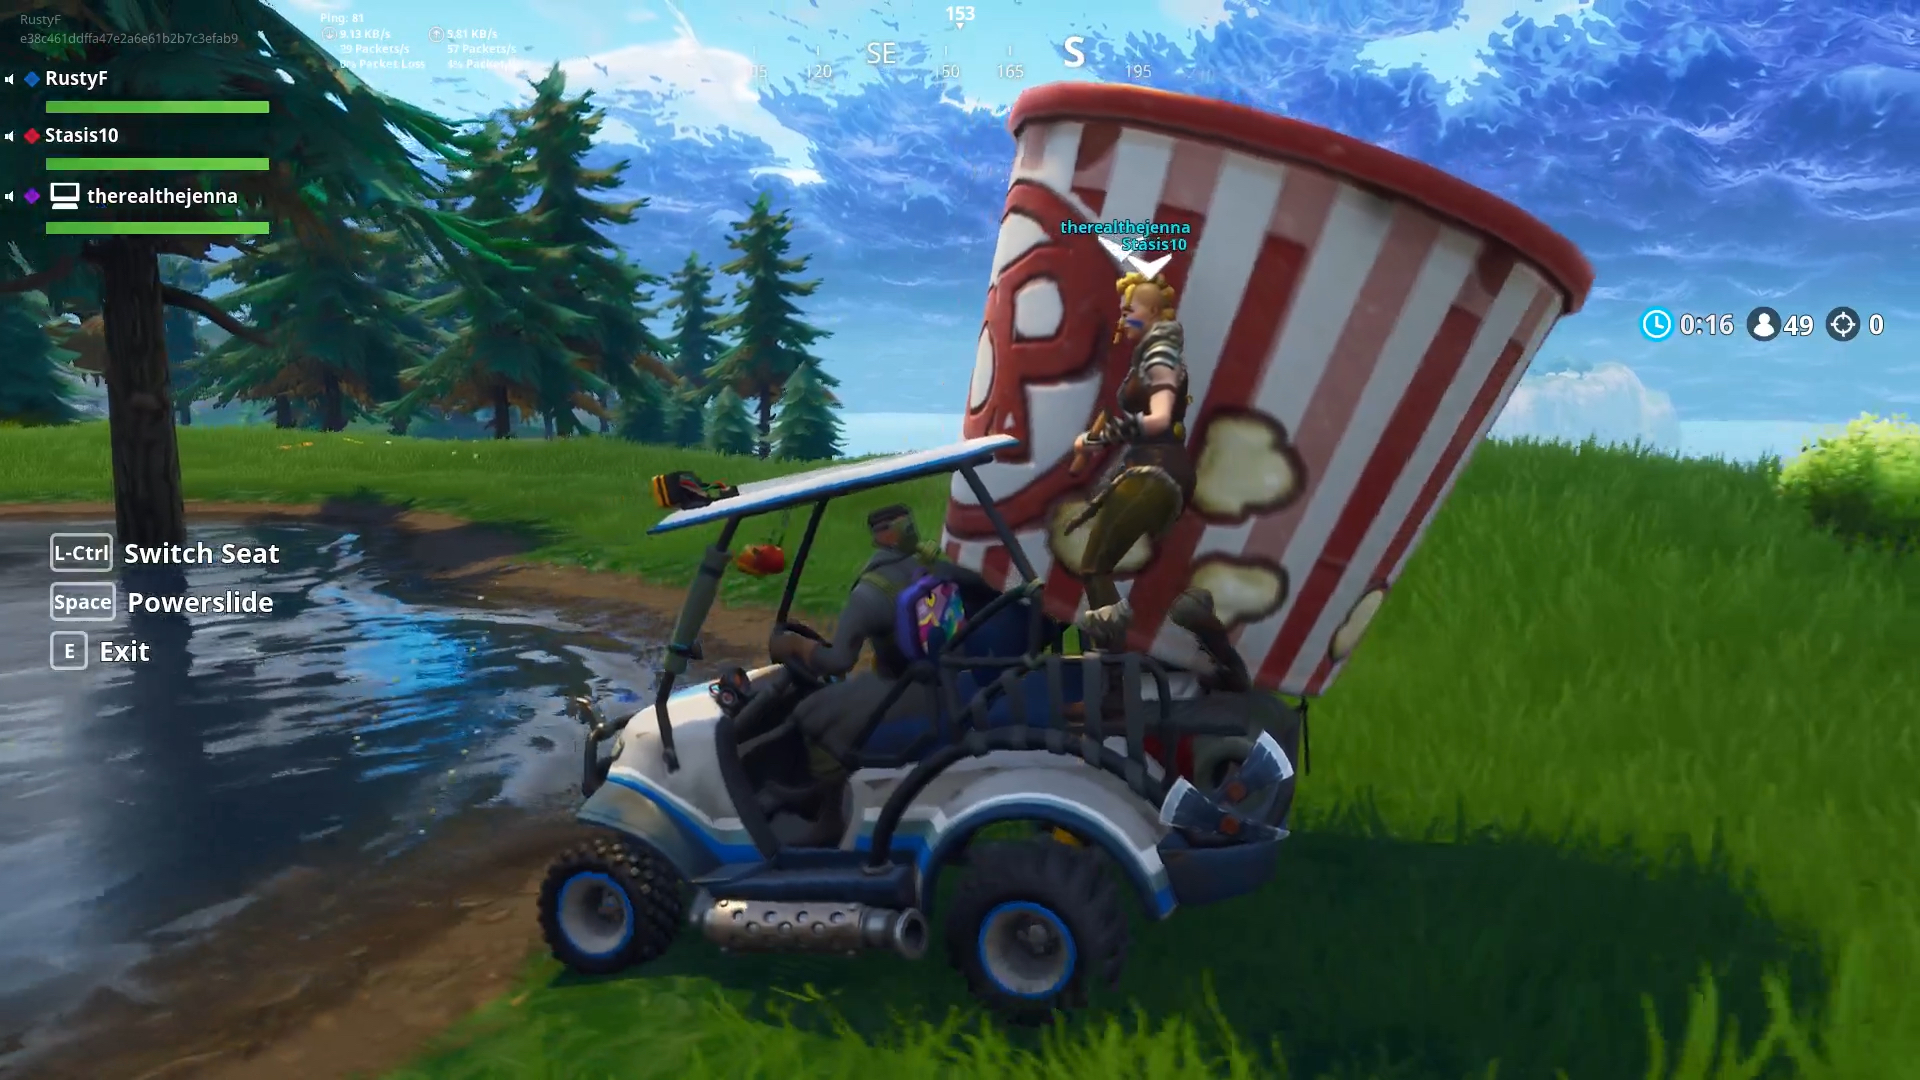 Fortnite's giant emote bug: How to make it happen - Polygon